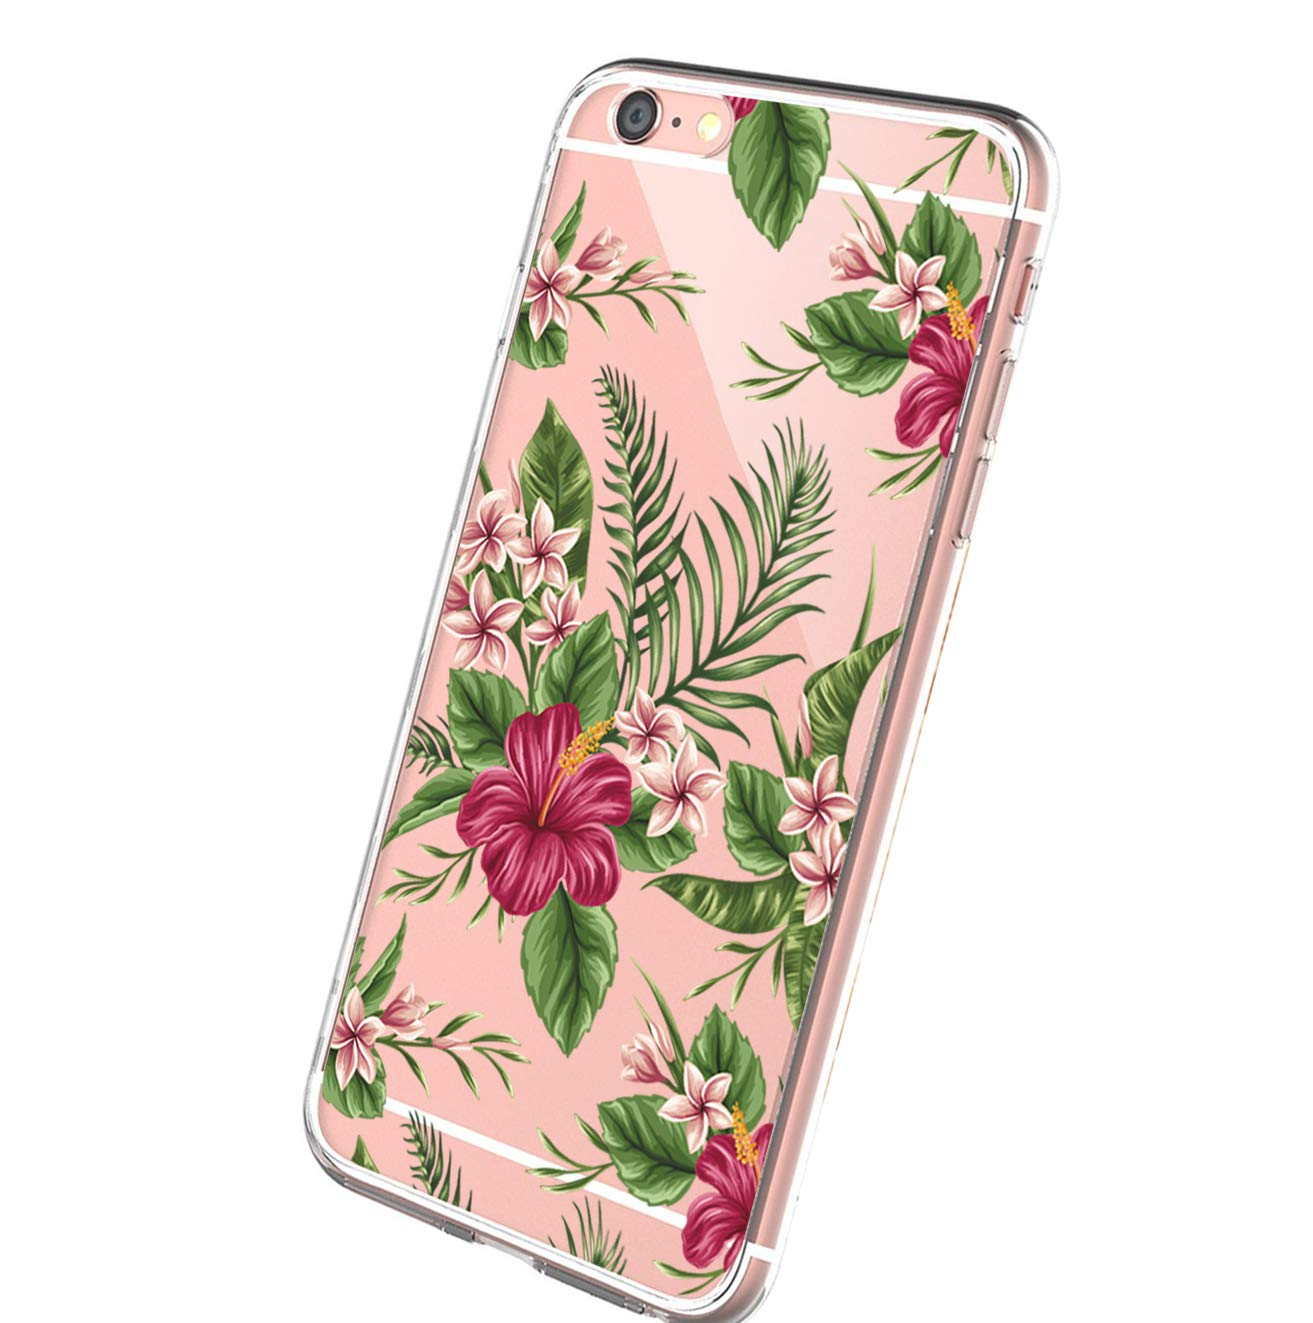 Wouier Case Compatible with iPhone 6 6s/6plus 6splus TPU Soft Silicone Transparent Clear Back Cover (iPhone6 6S 4.7inch, Color 13)